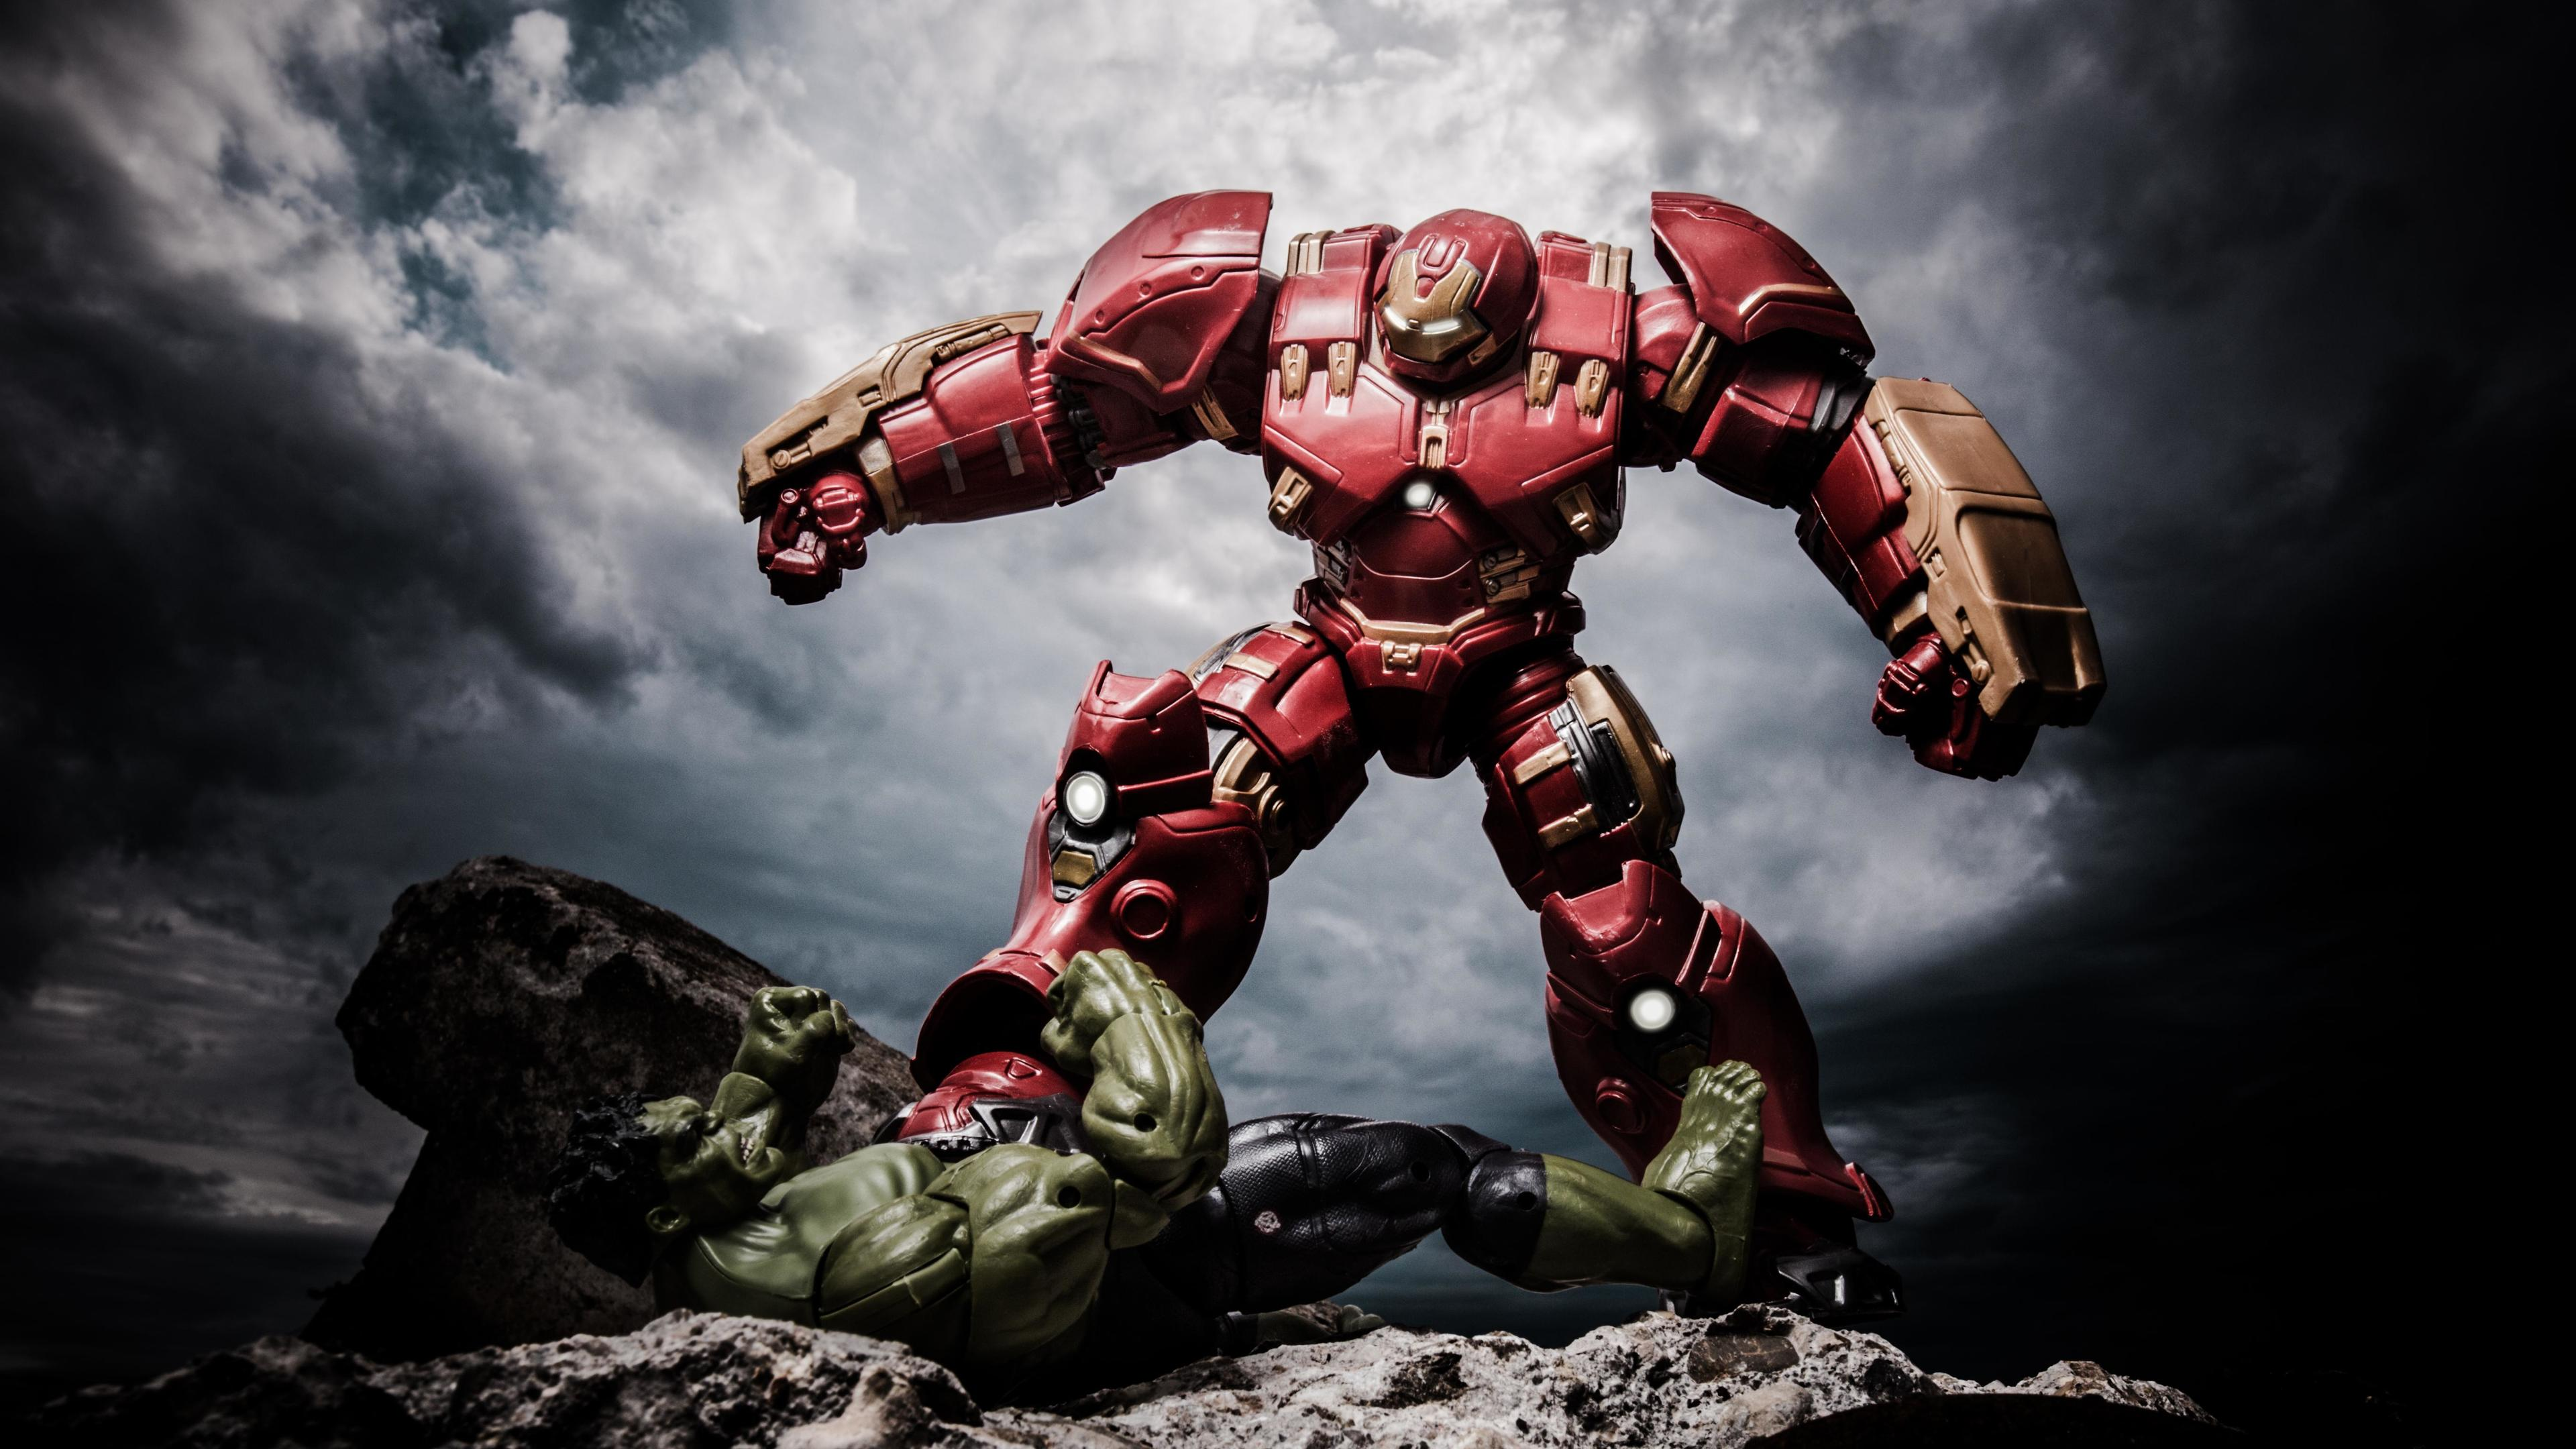 Wallpaper 4k Ironman Hulkbuster Vs The Hulk 4k Wallpapers 5k